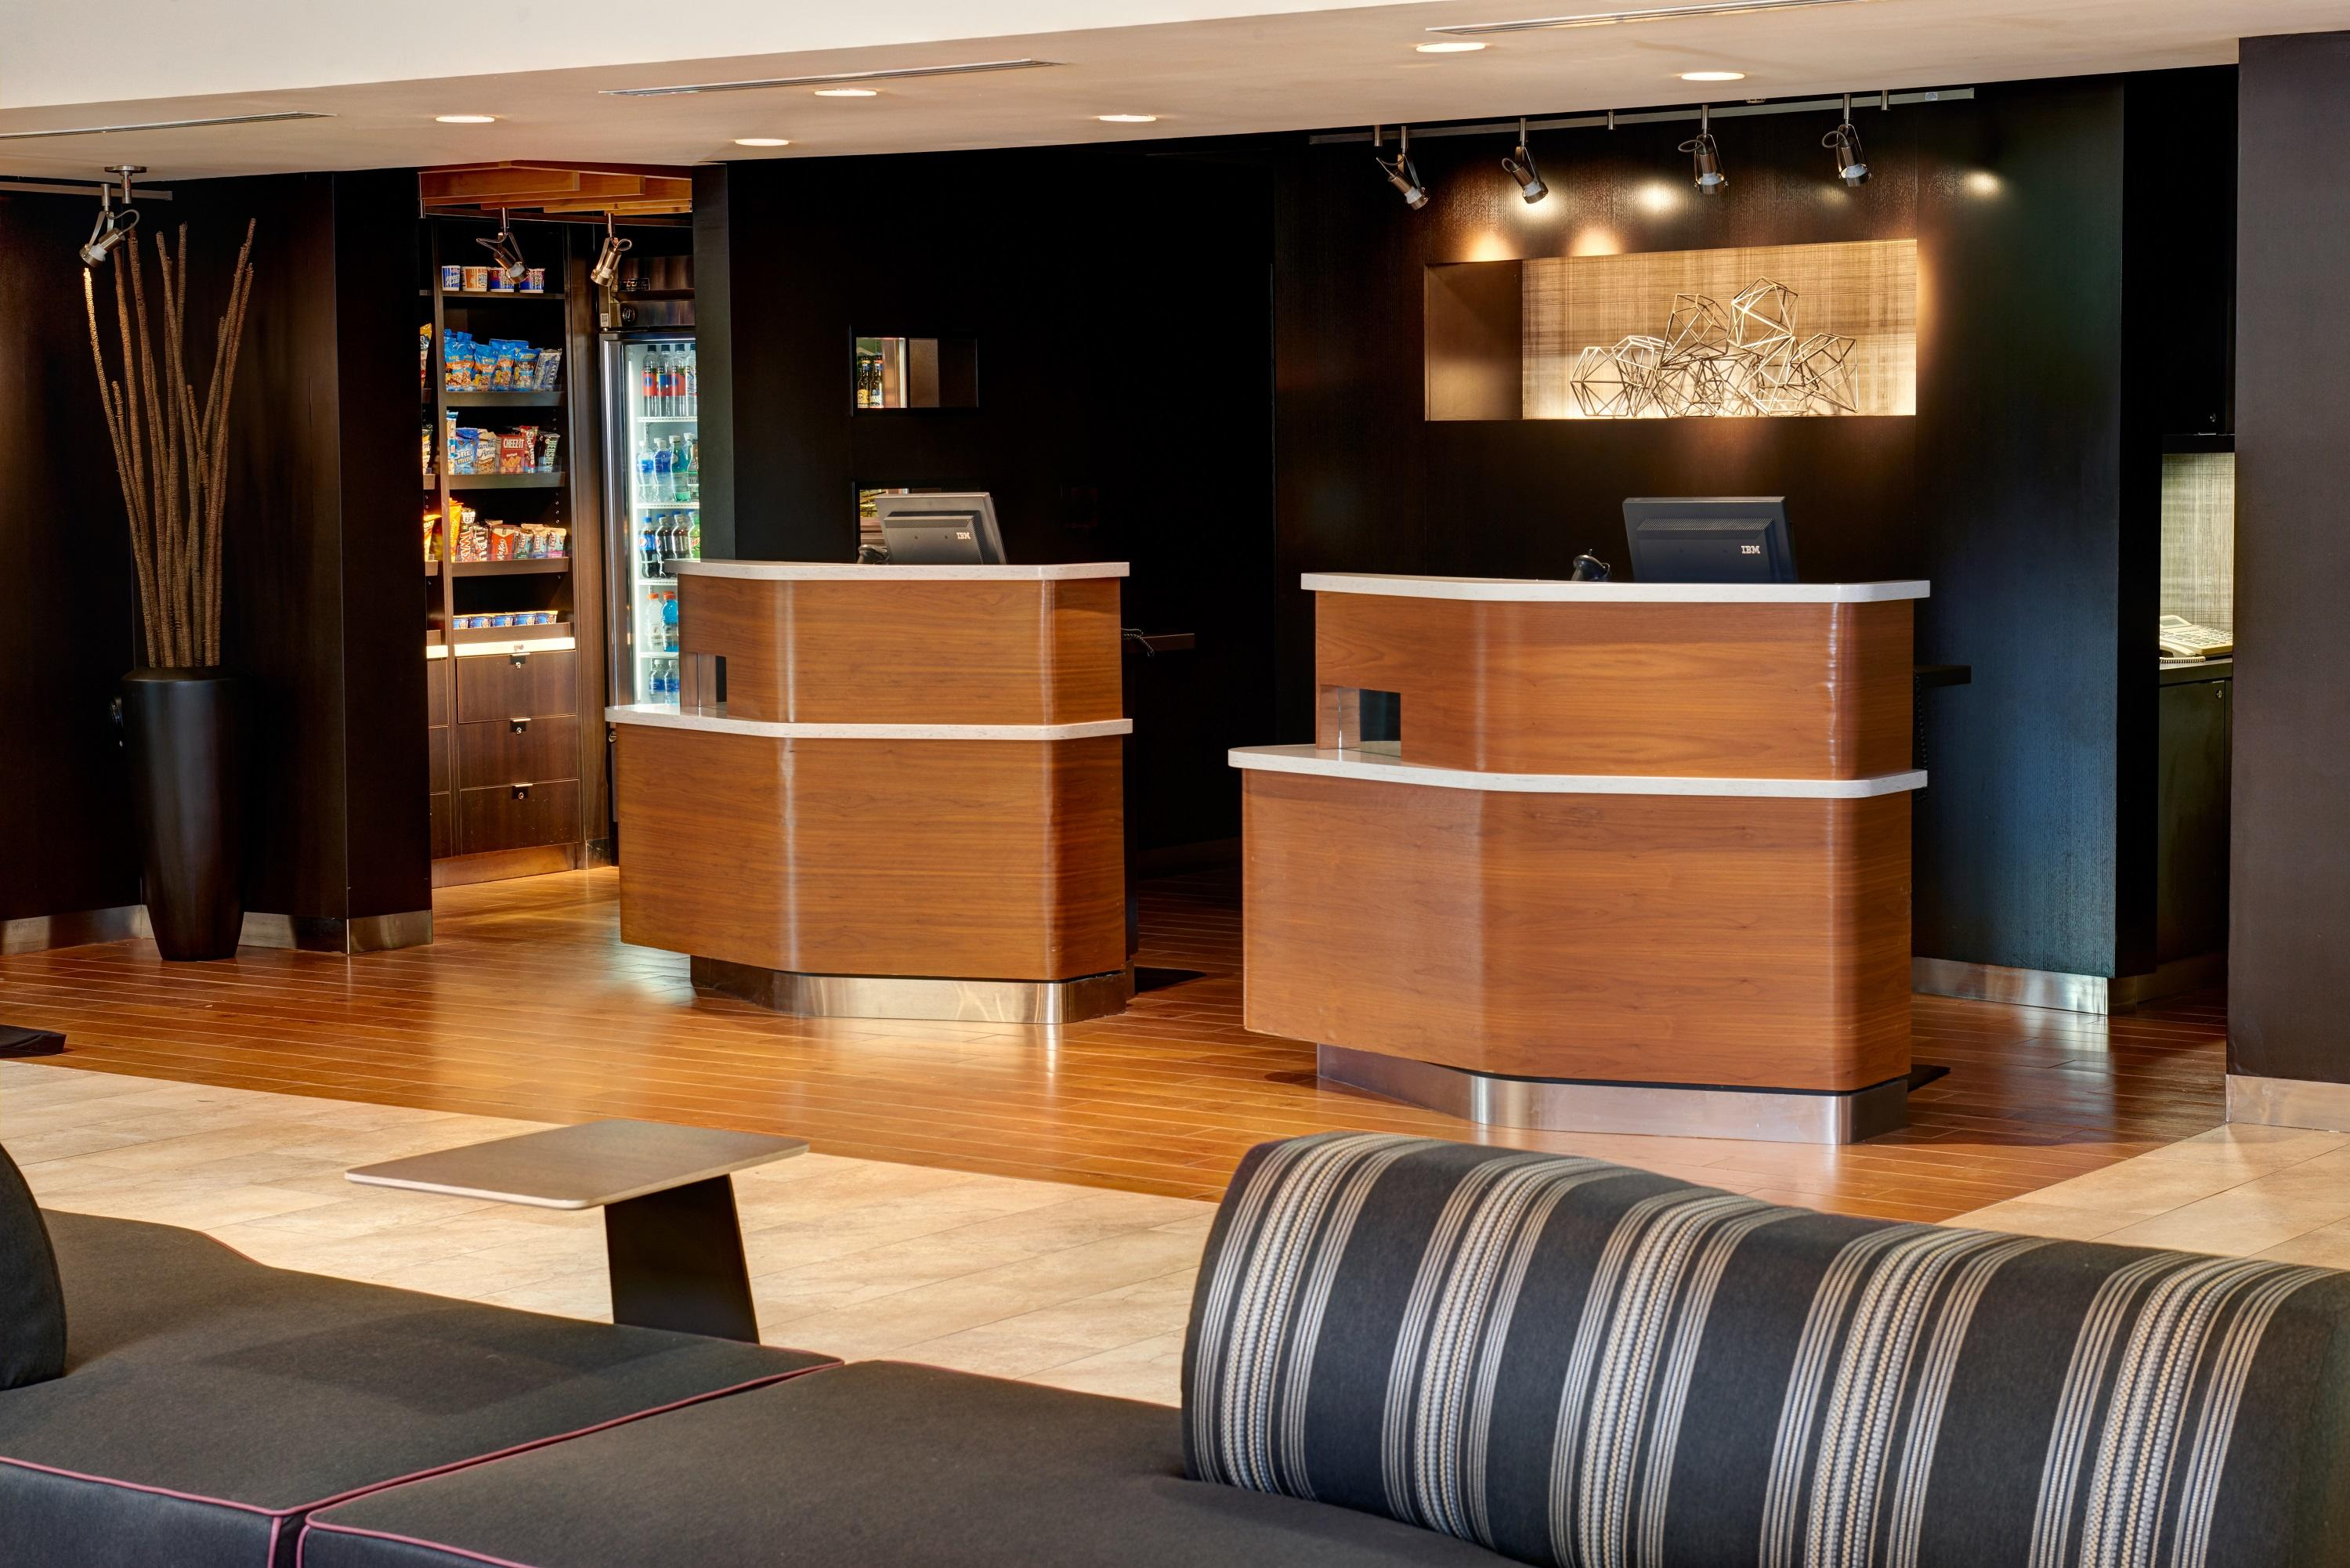 Courtyard by Marriott Chicago Oakbrook Terrace image 1